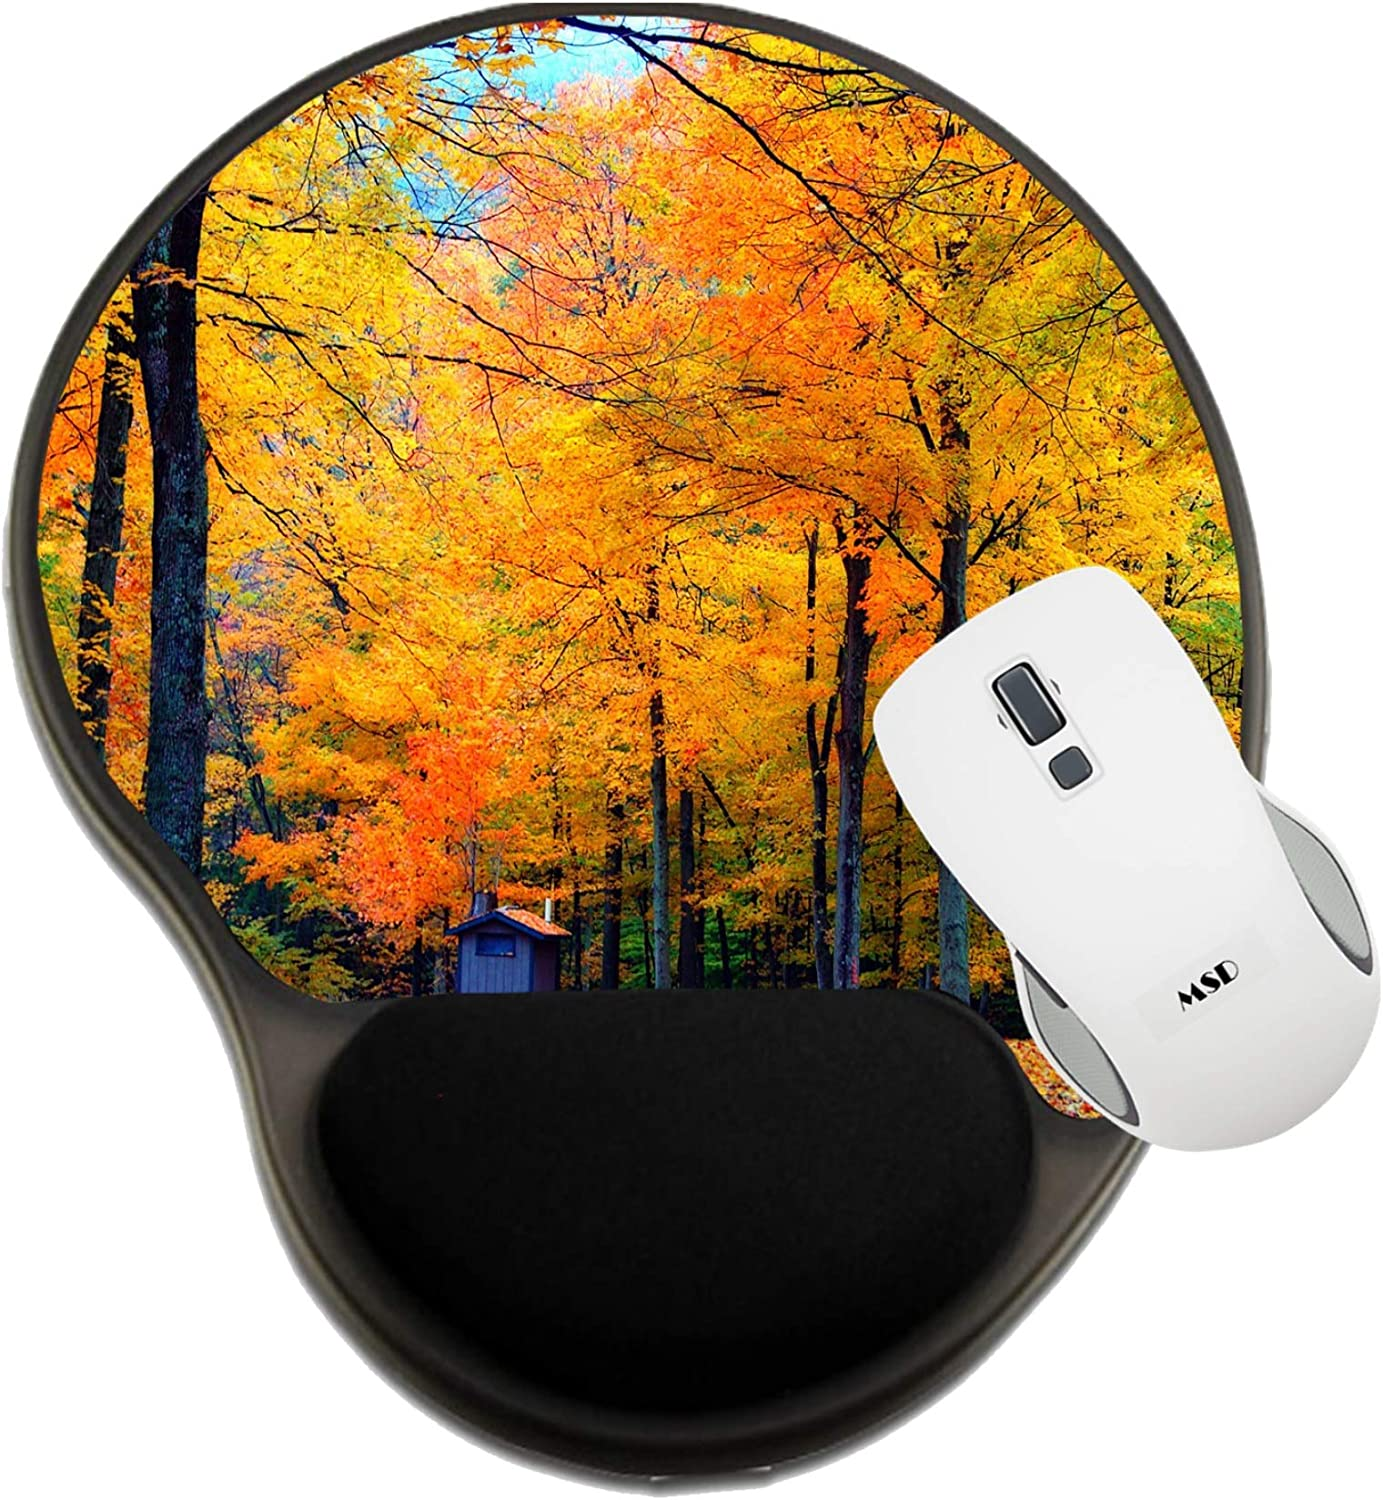 Fall Foliage Backdrop Photo 602737 MSD Mousepad Wrist Rest Protected Mouse Pads Mat with Wrist Support